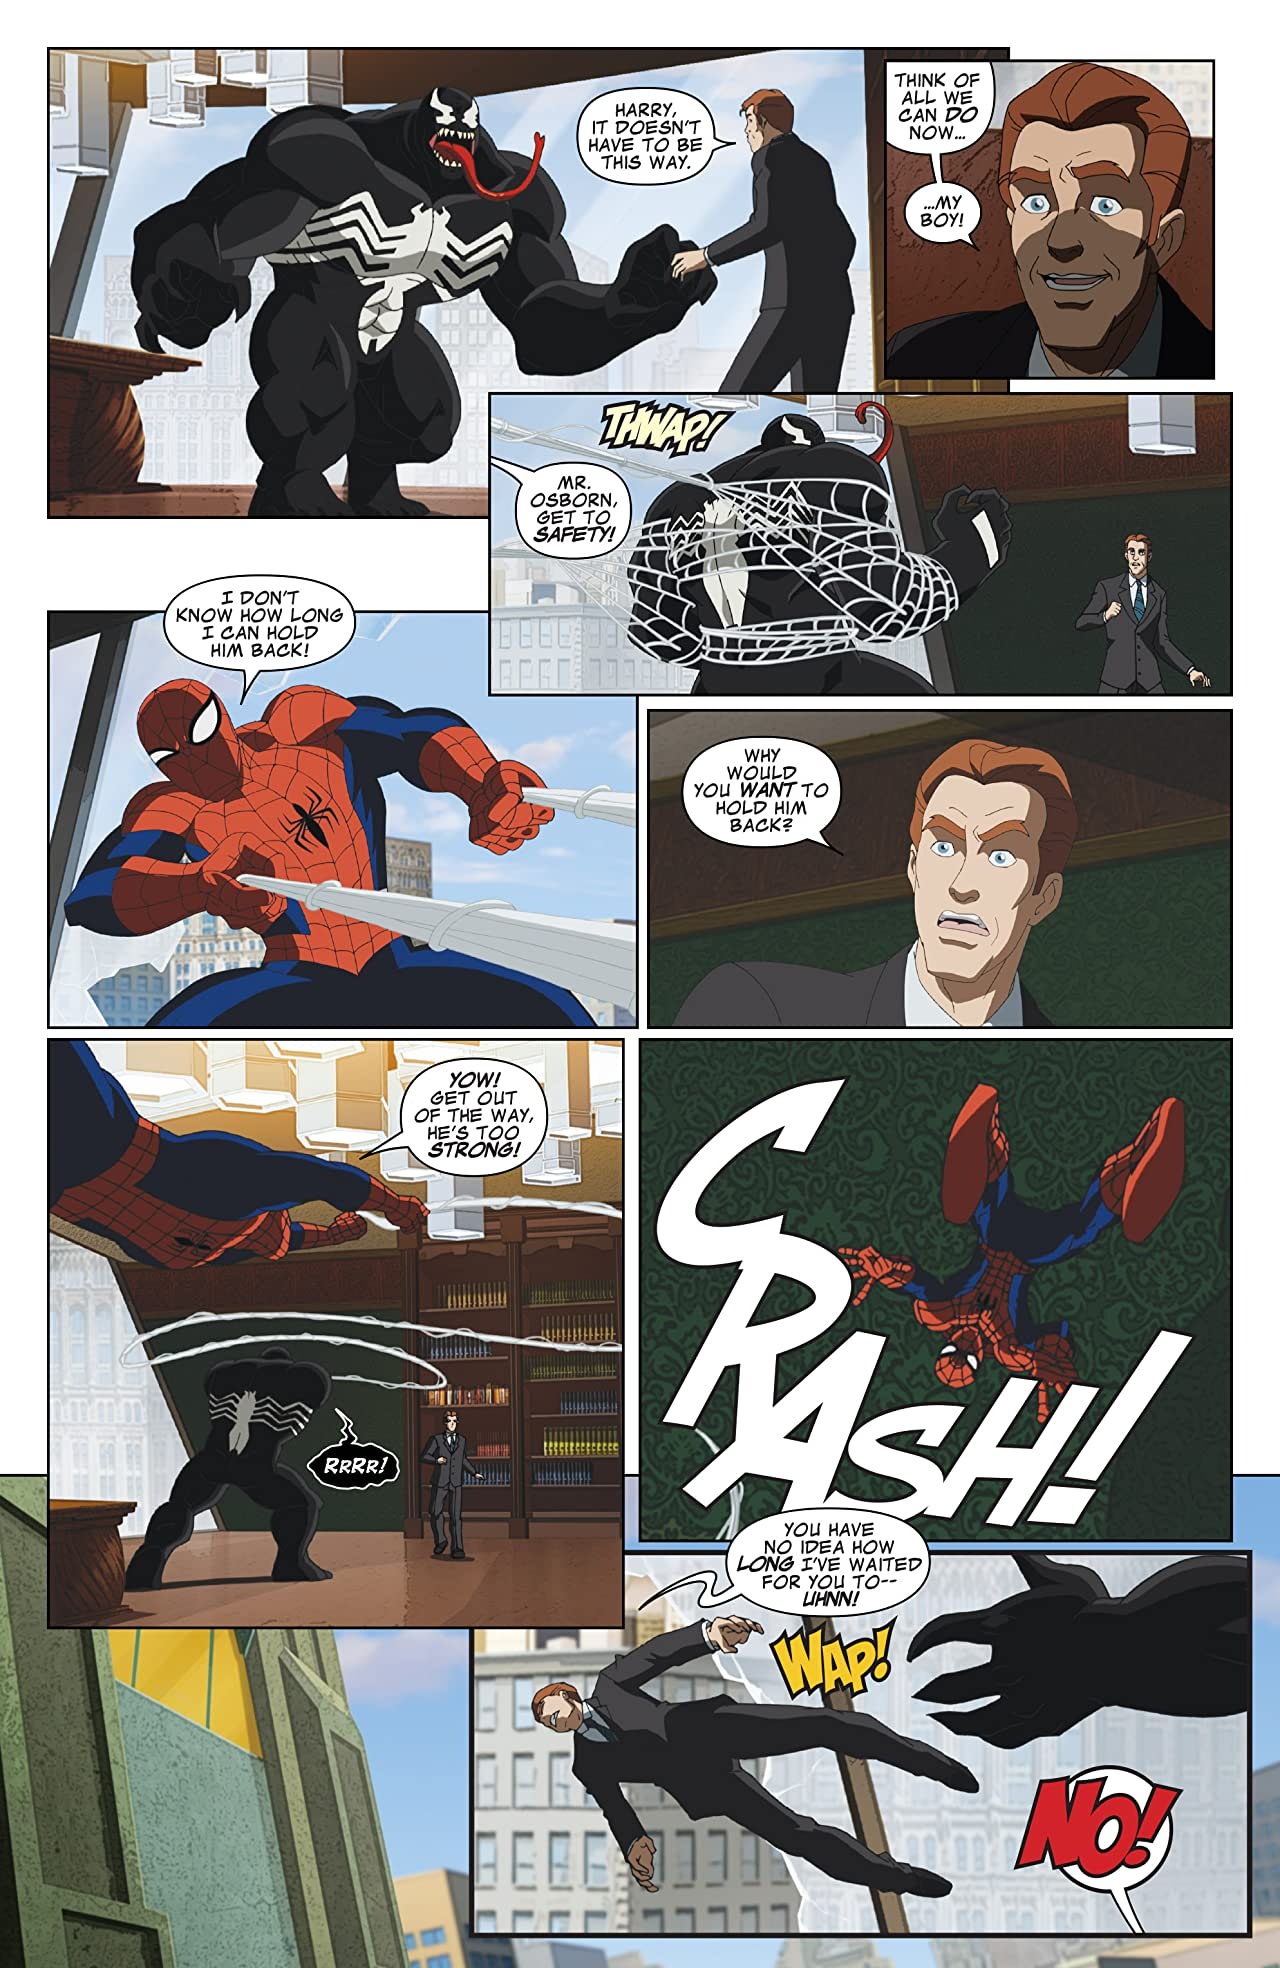 Marvel Universe Ultimate Spider-Man (2012-2014) #19